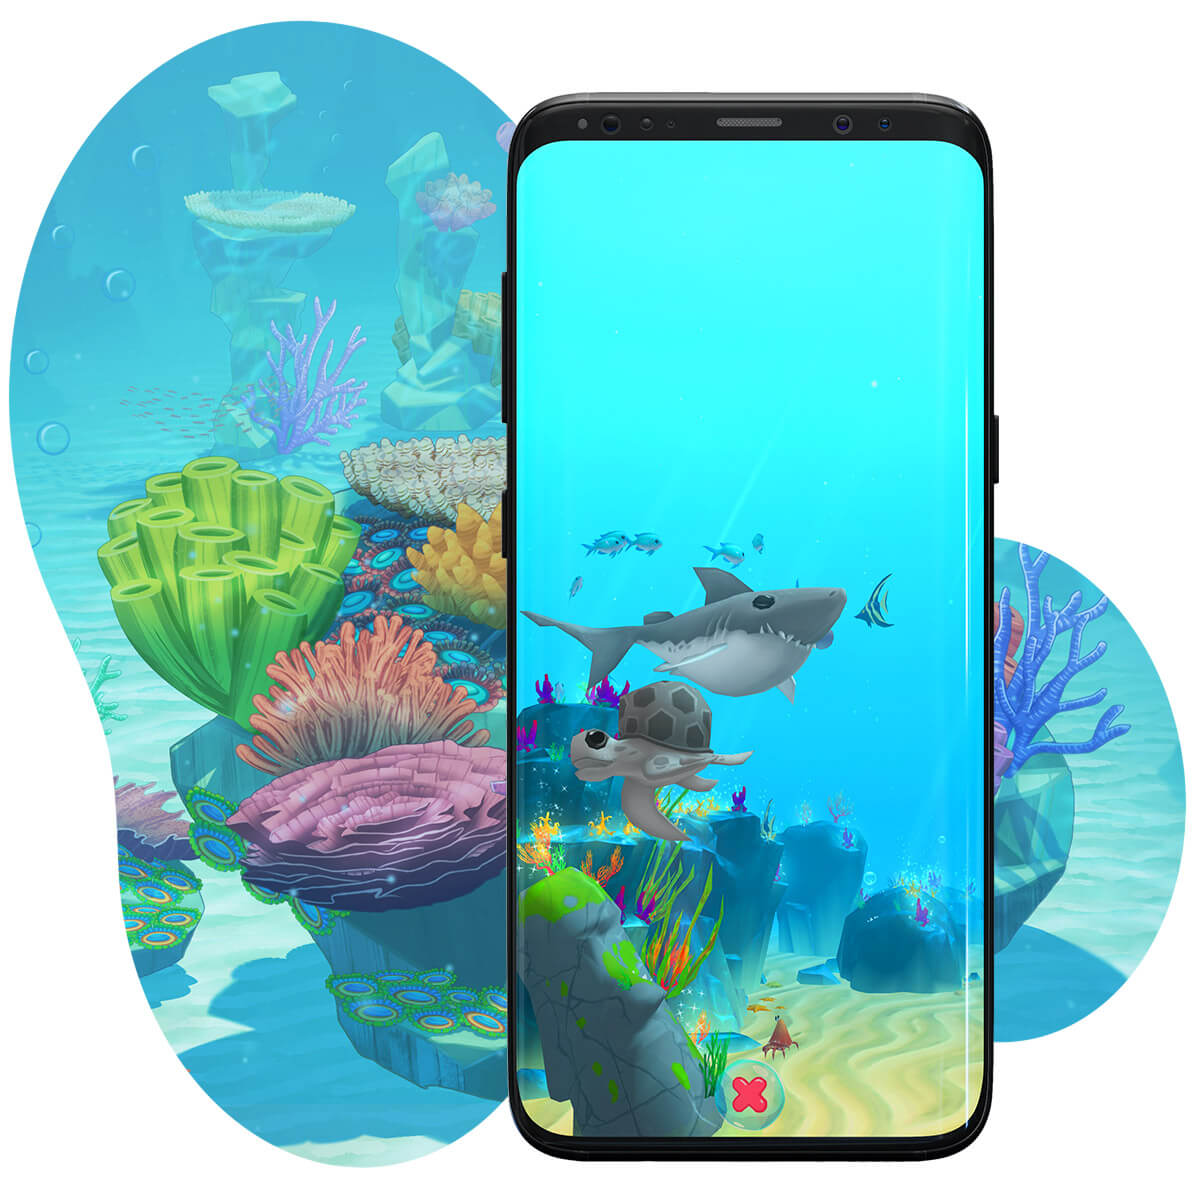 A screenshot of Rainbow Reef - a bubbly mobile gardening game inspired by the Great Barrier Reef.